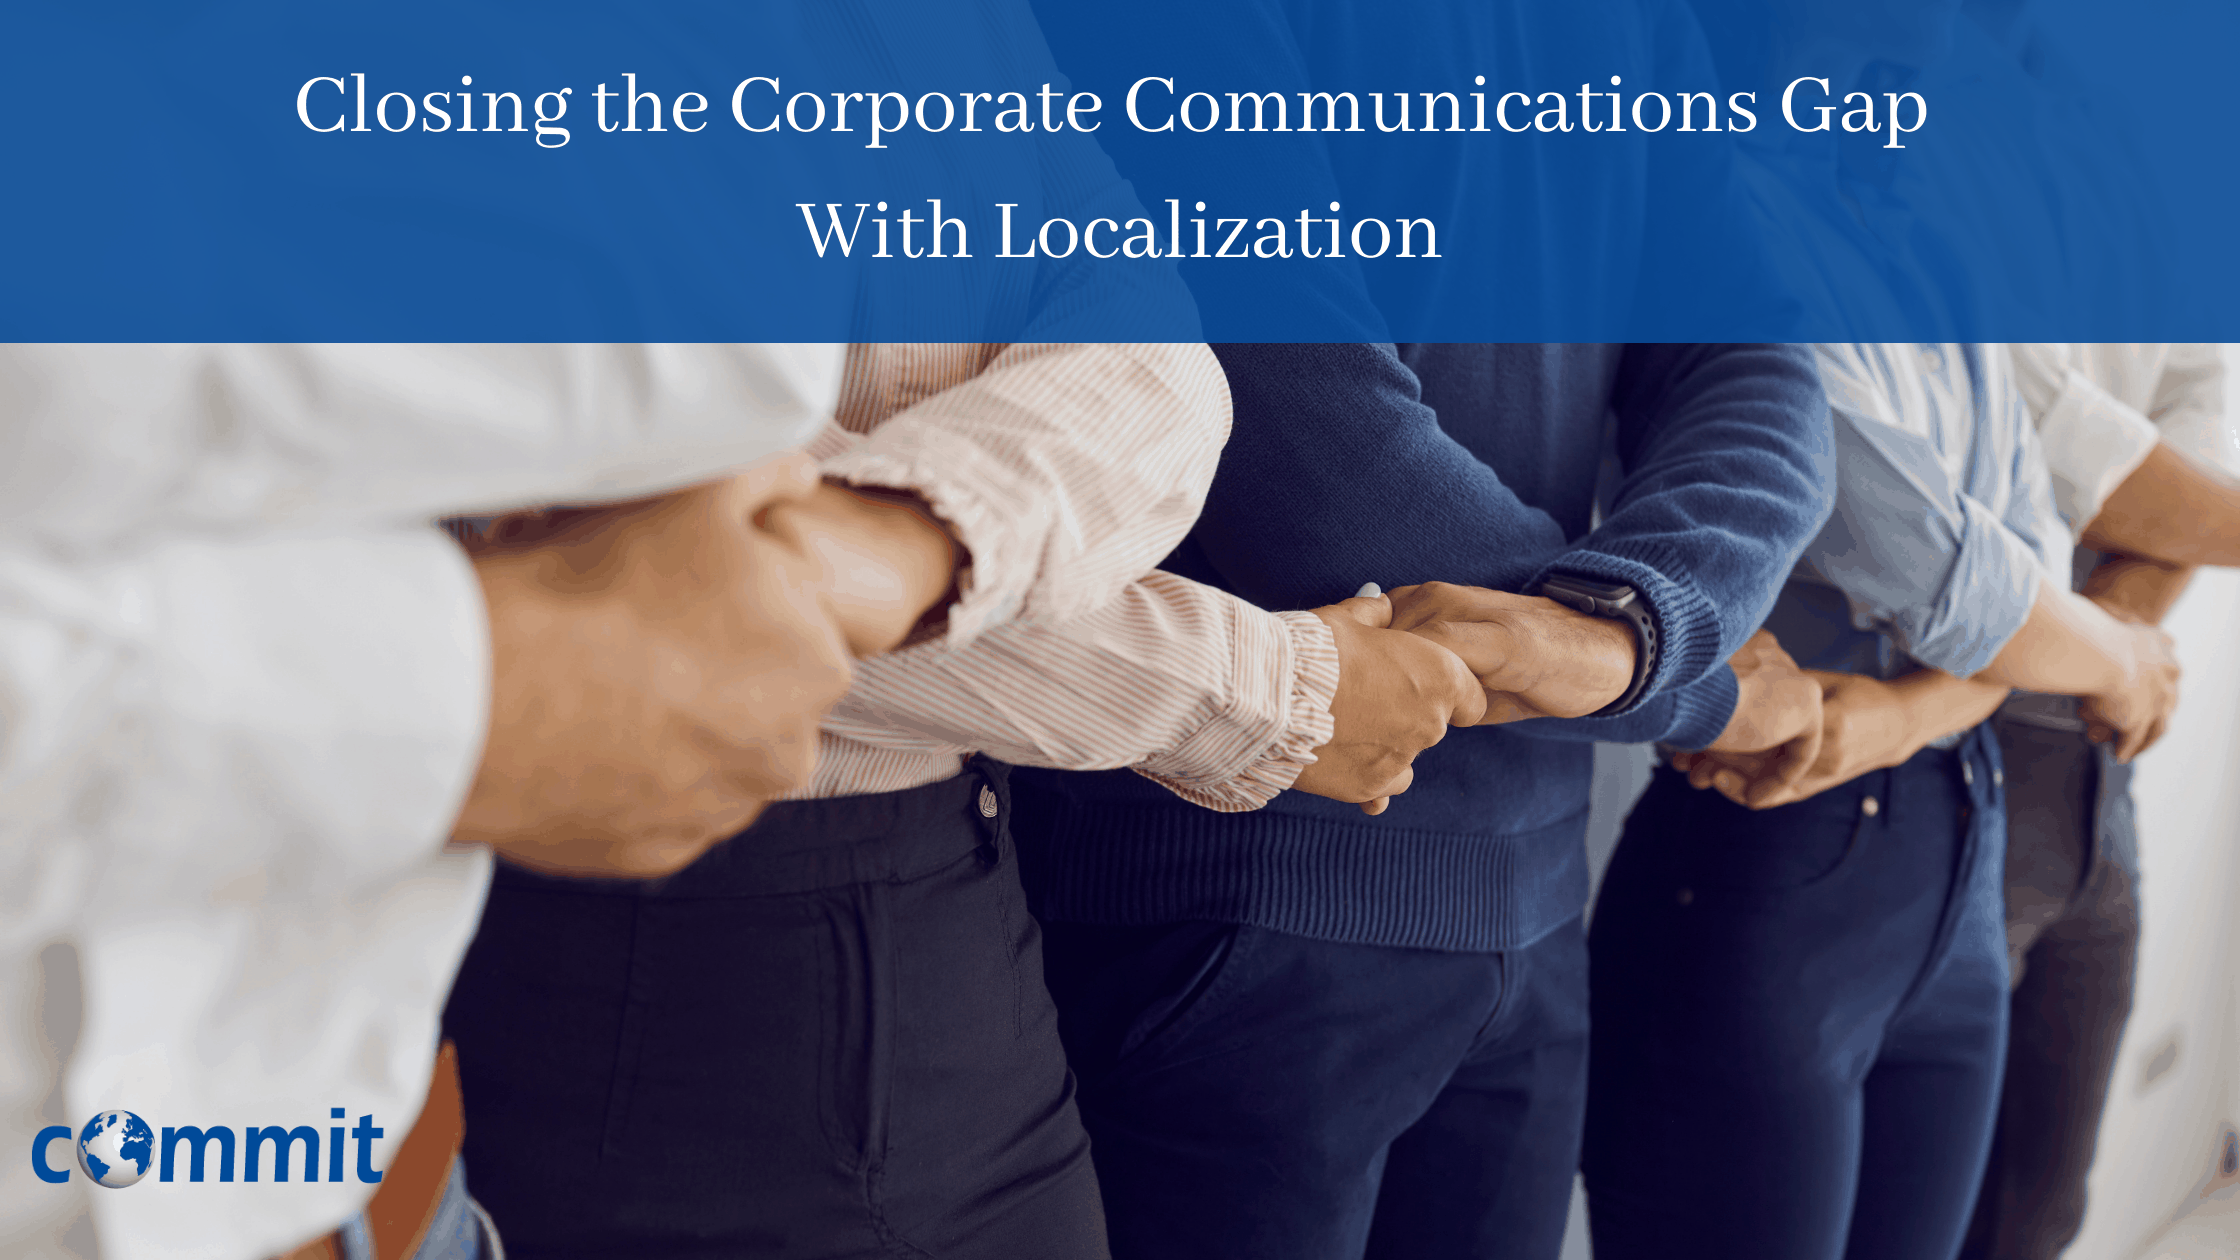 Closing the Corporate Communications Gap With Localization